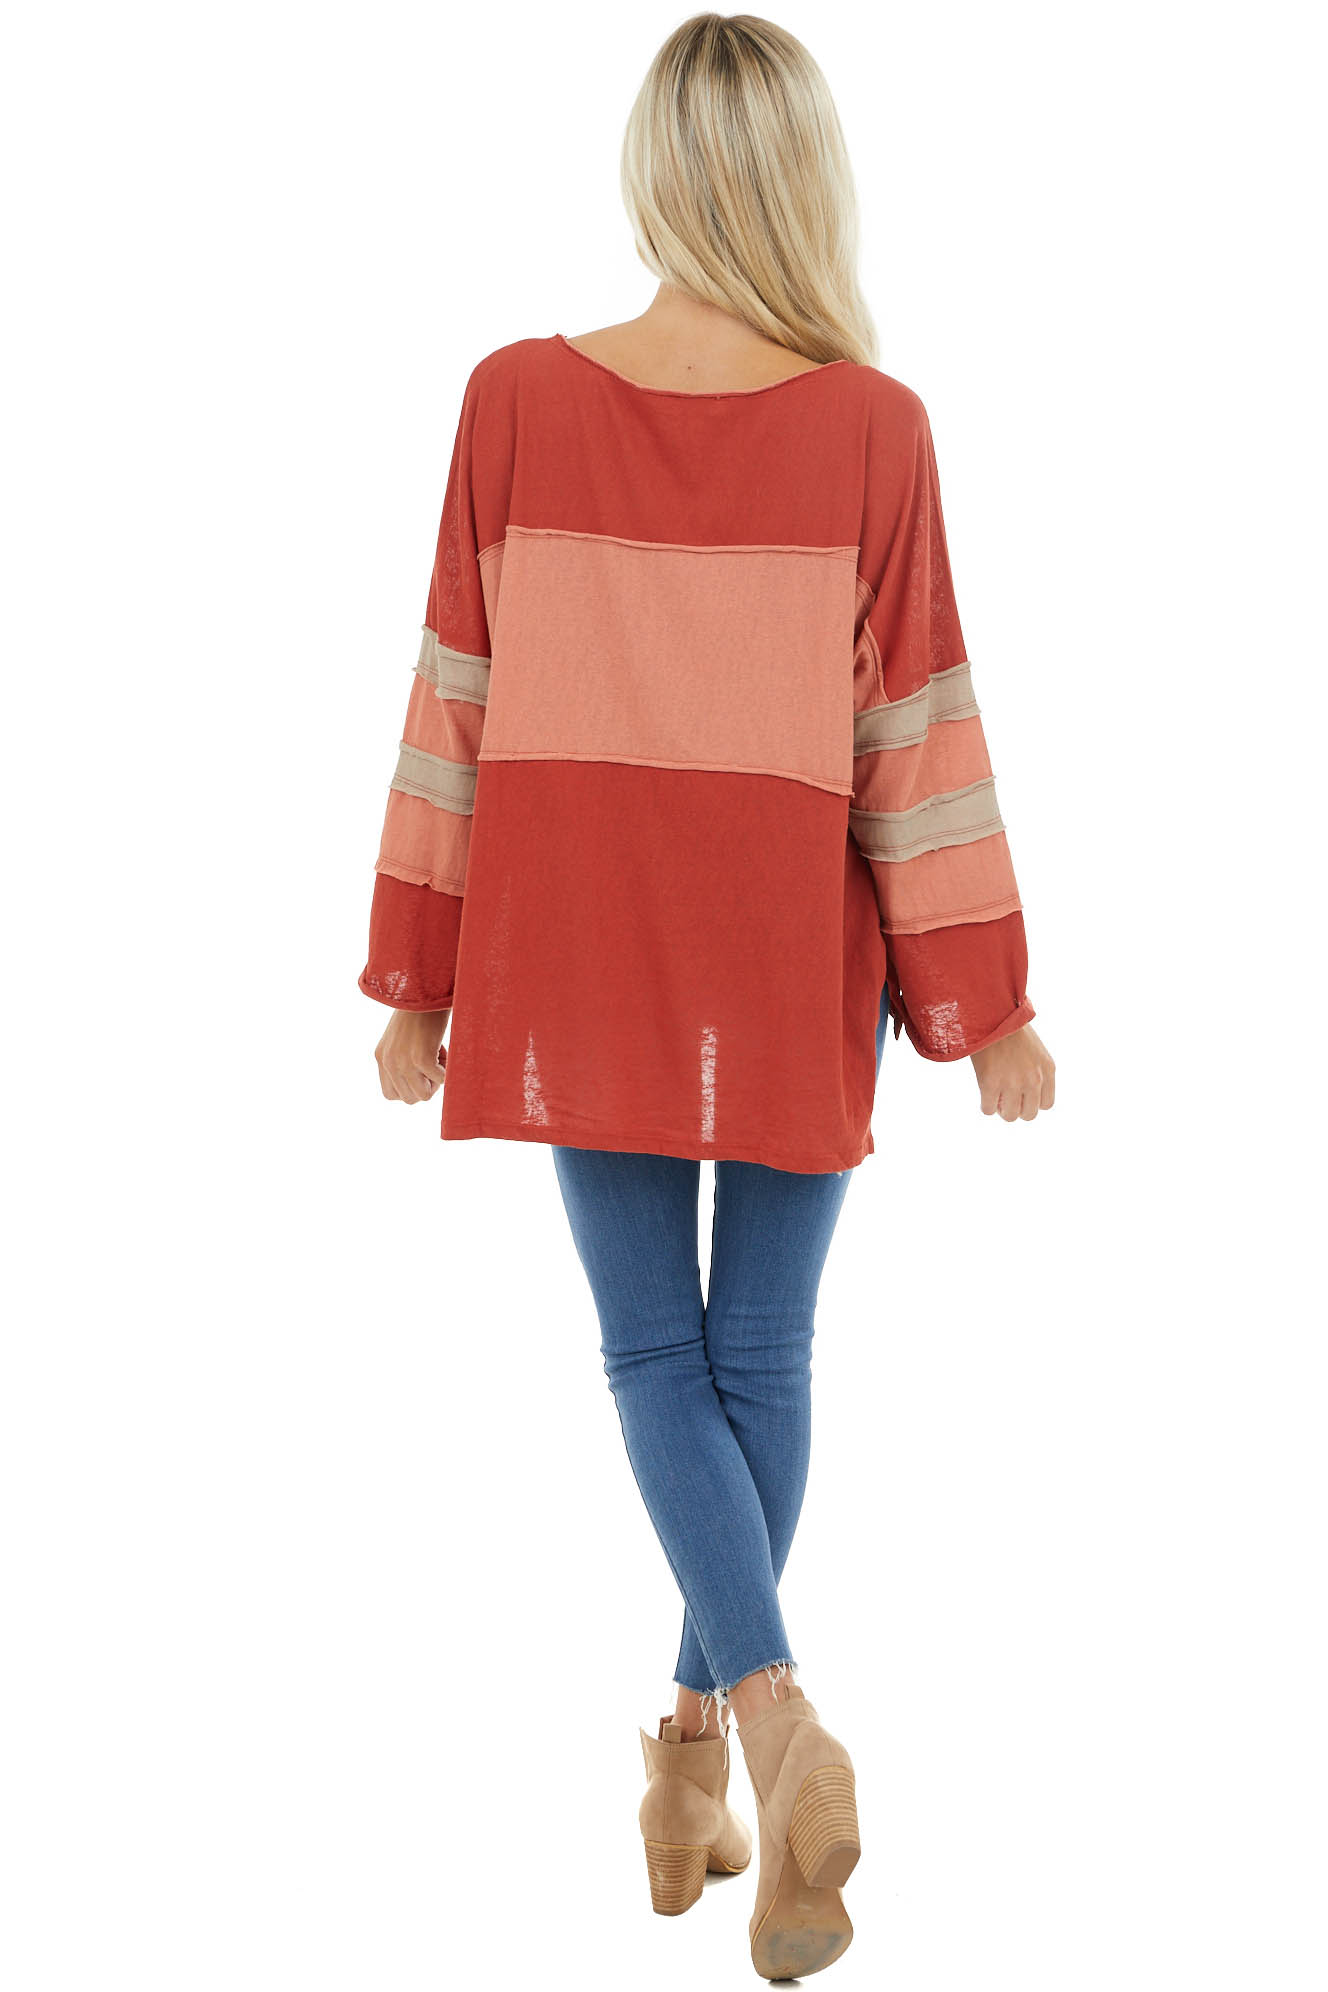 Rust and Apricot Top with Raw Hem detail and Side Slits